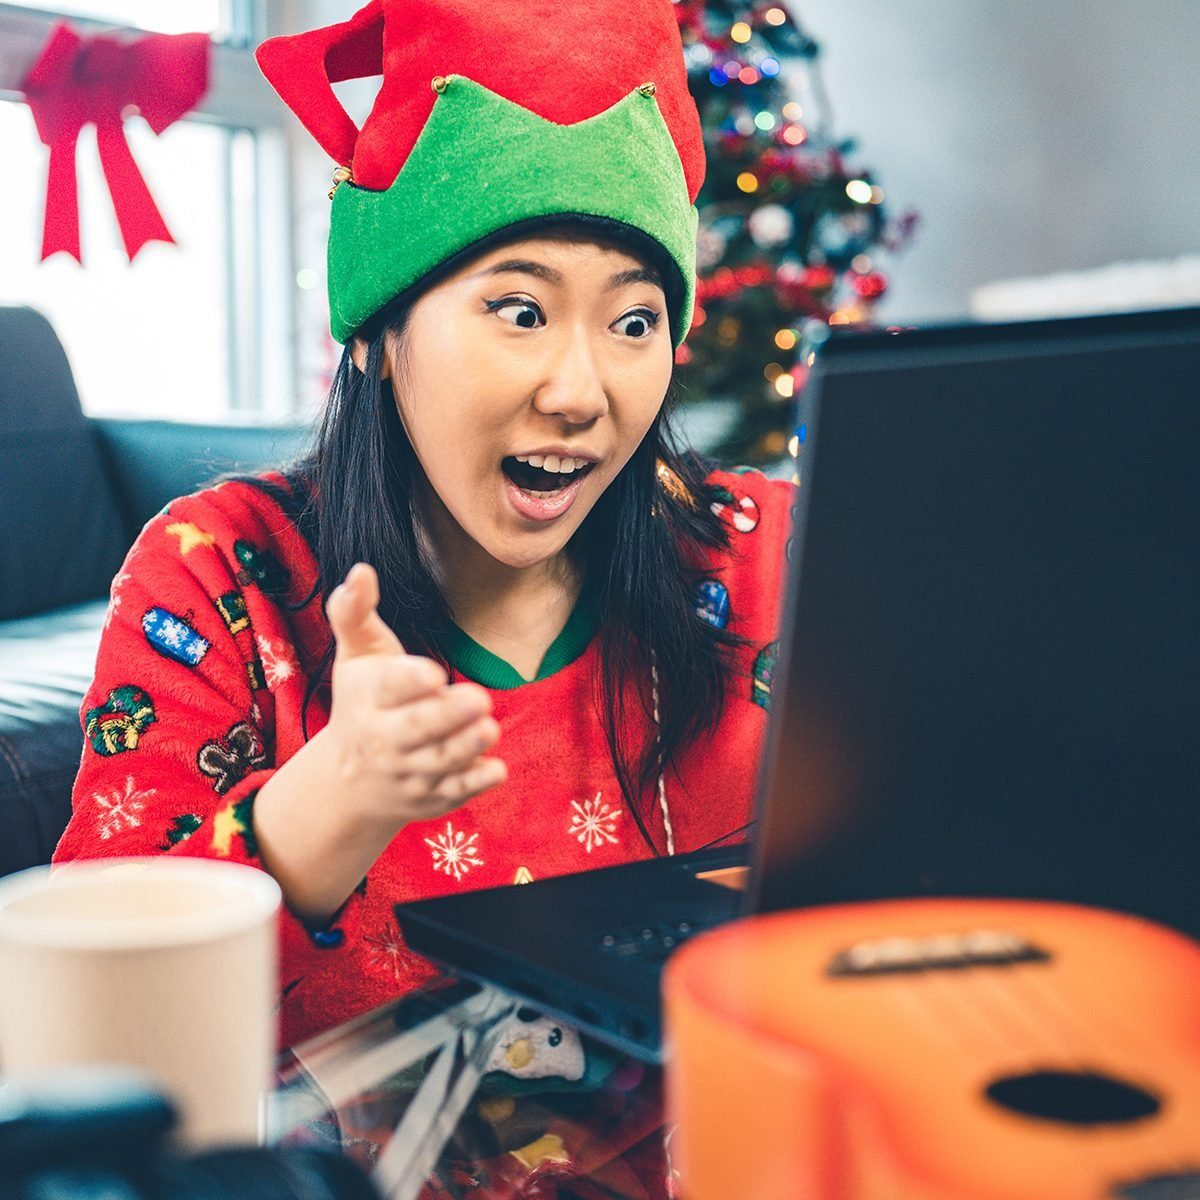 Millennial Christmas party in season costumes. Interior of modern apartment with Christmas decorations. Portrait of a young Chinese woman looking at laptop